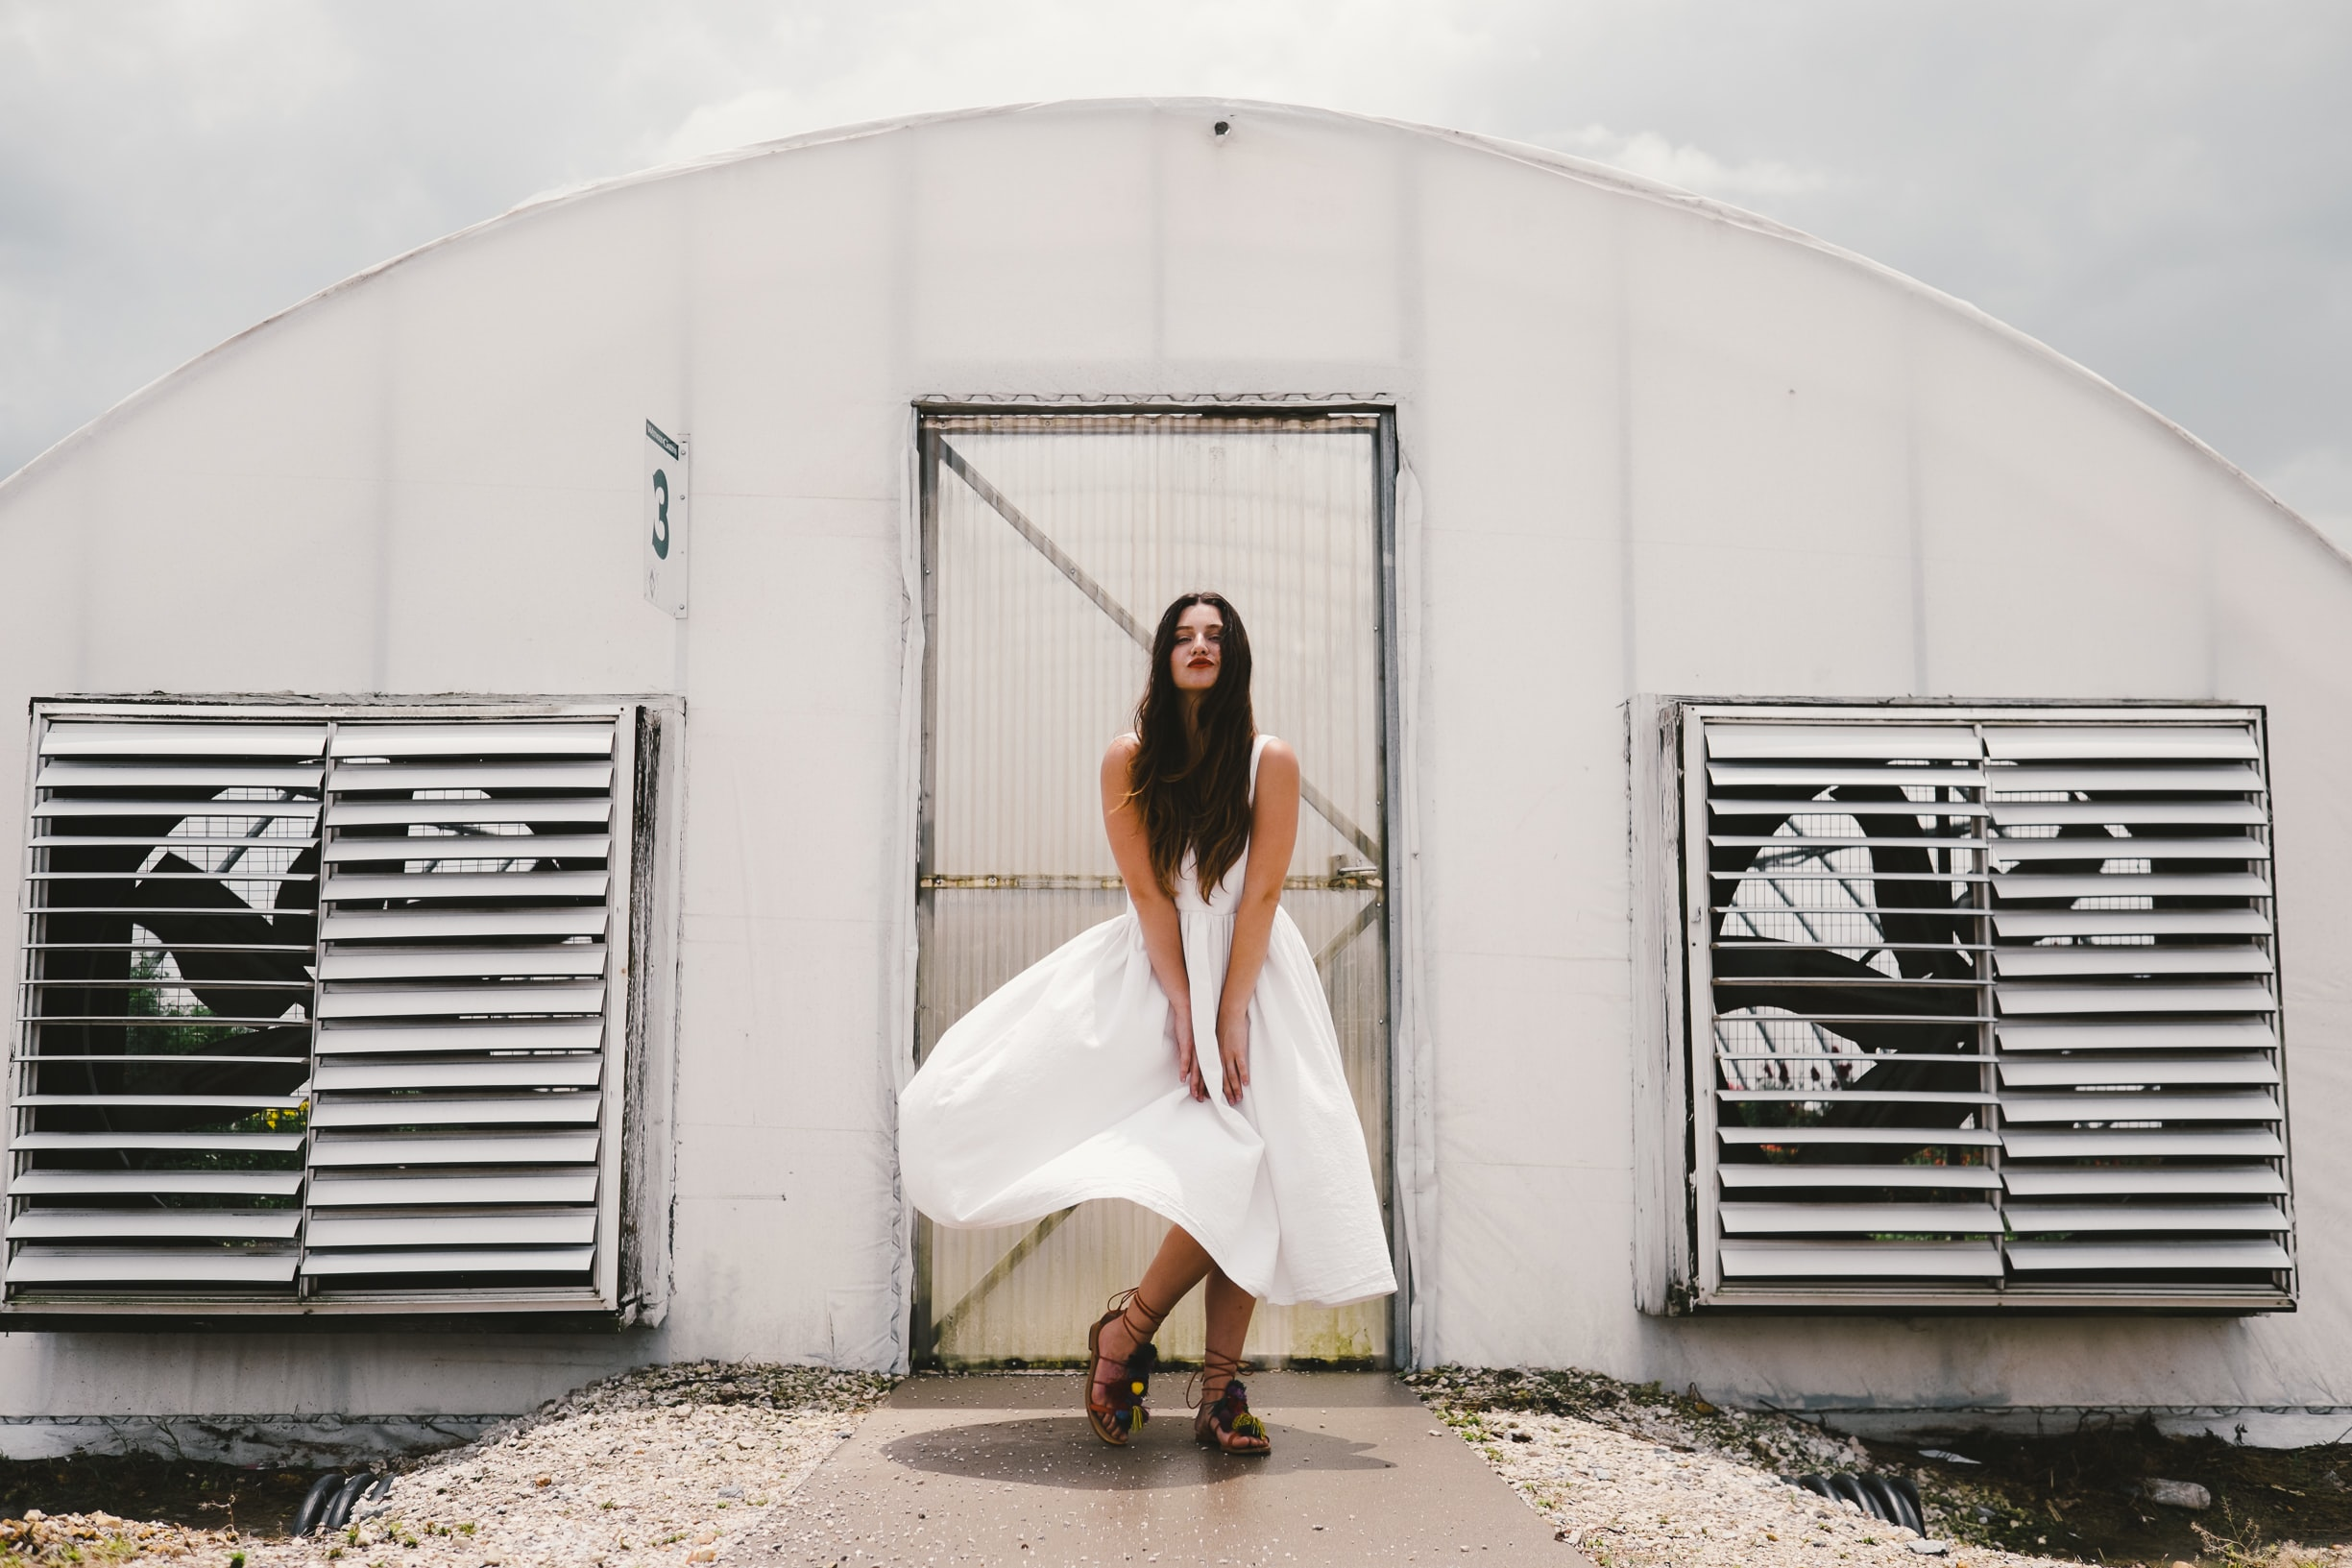 woman wearing white dress standing in front of white enclosure during daytime